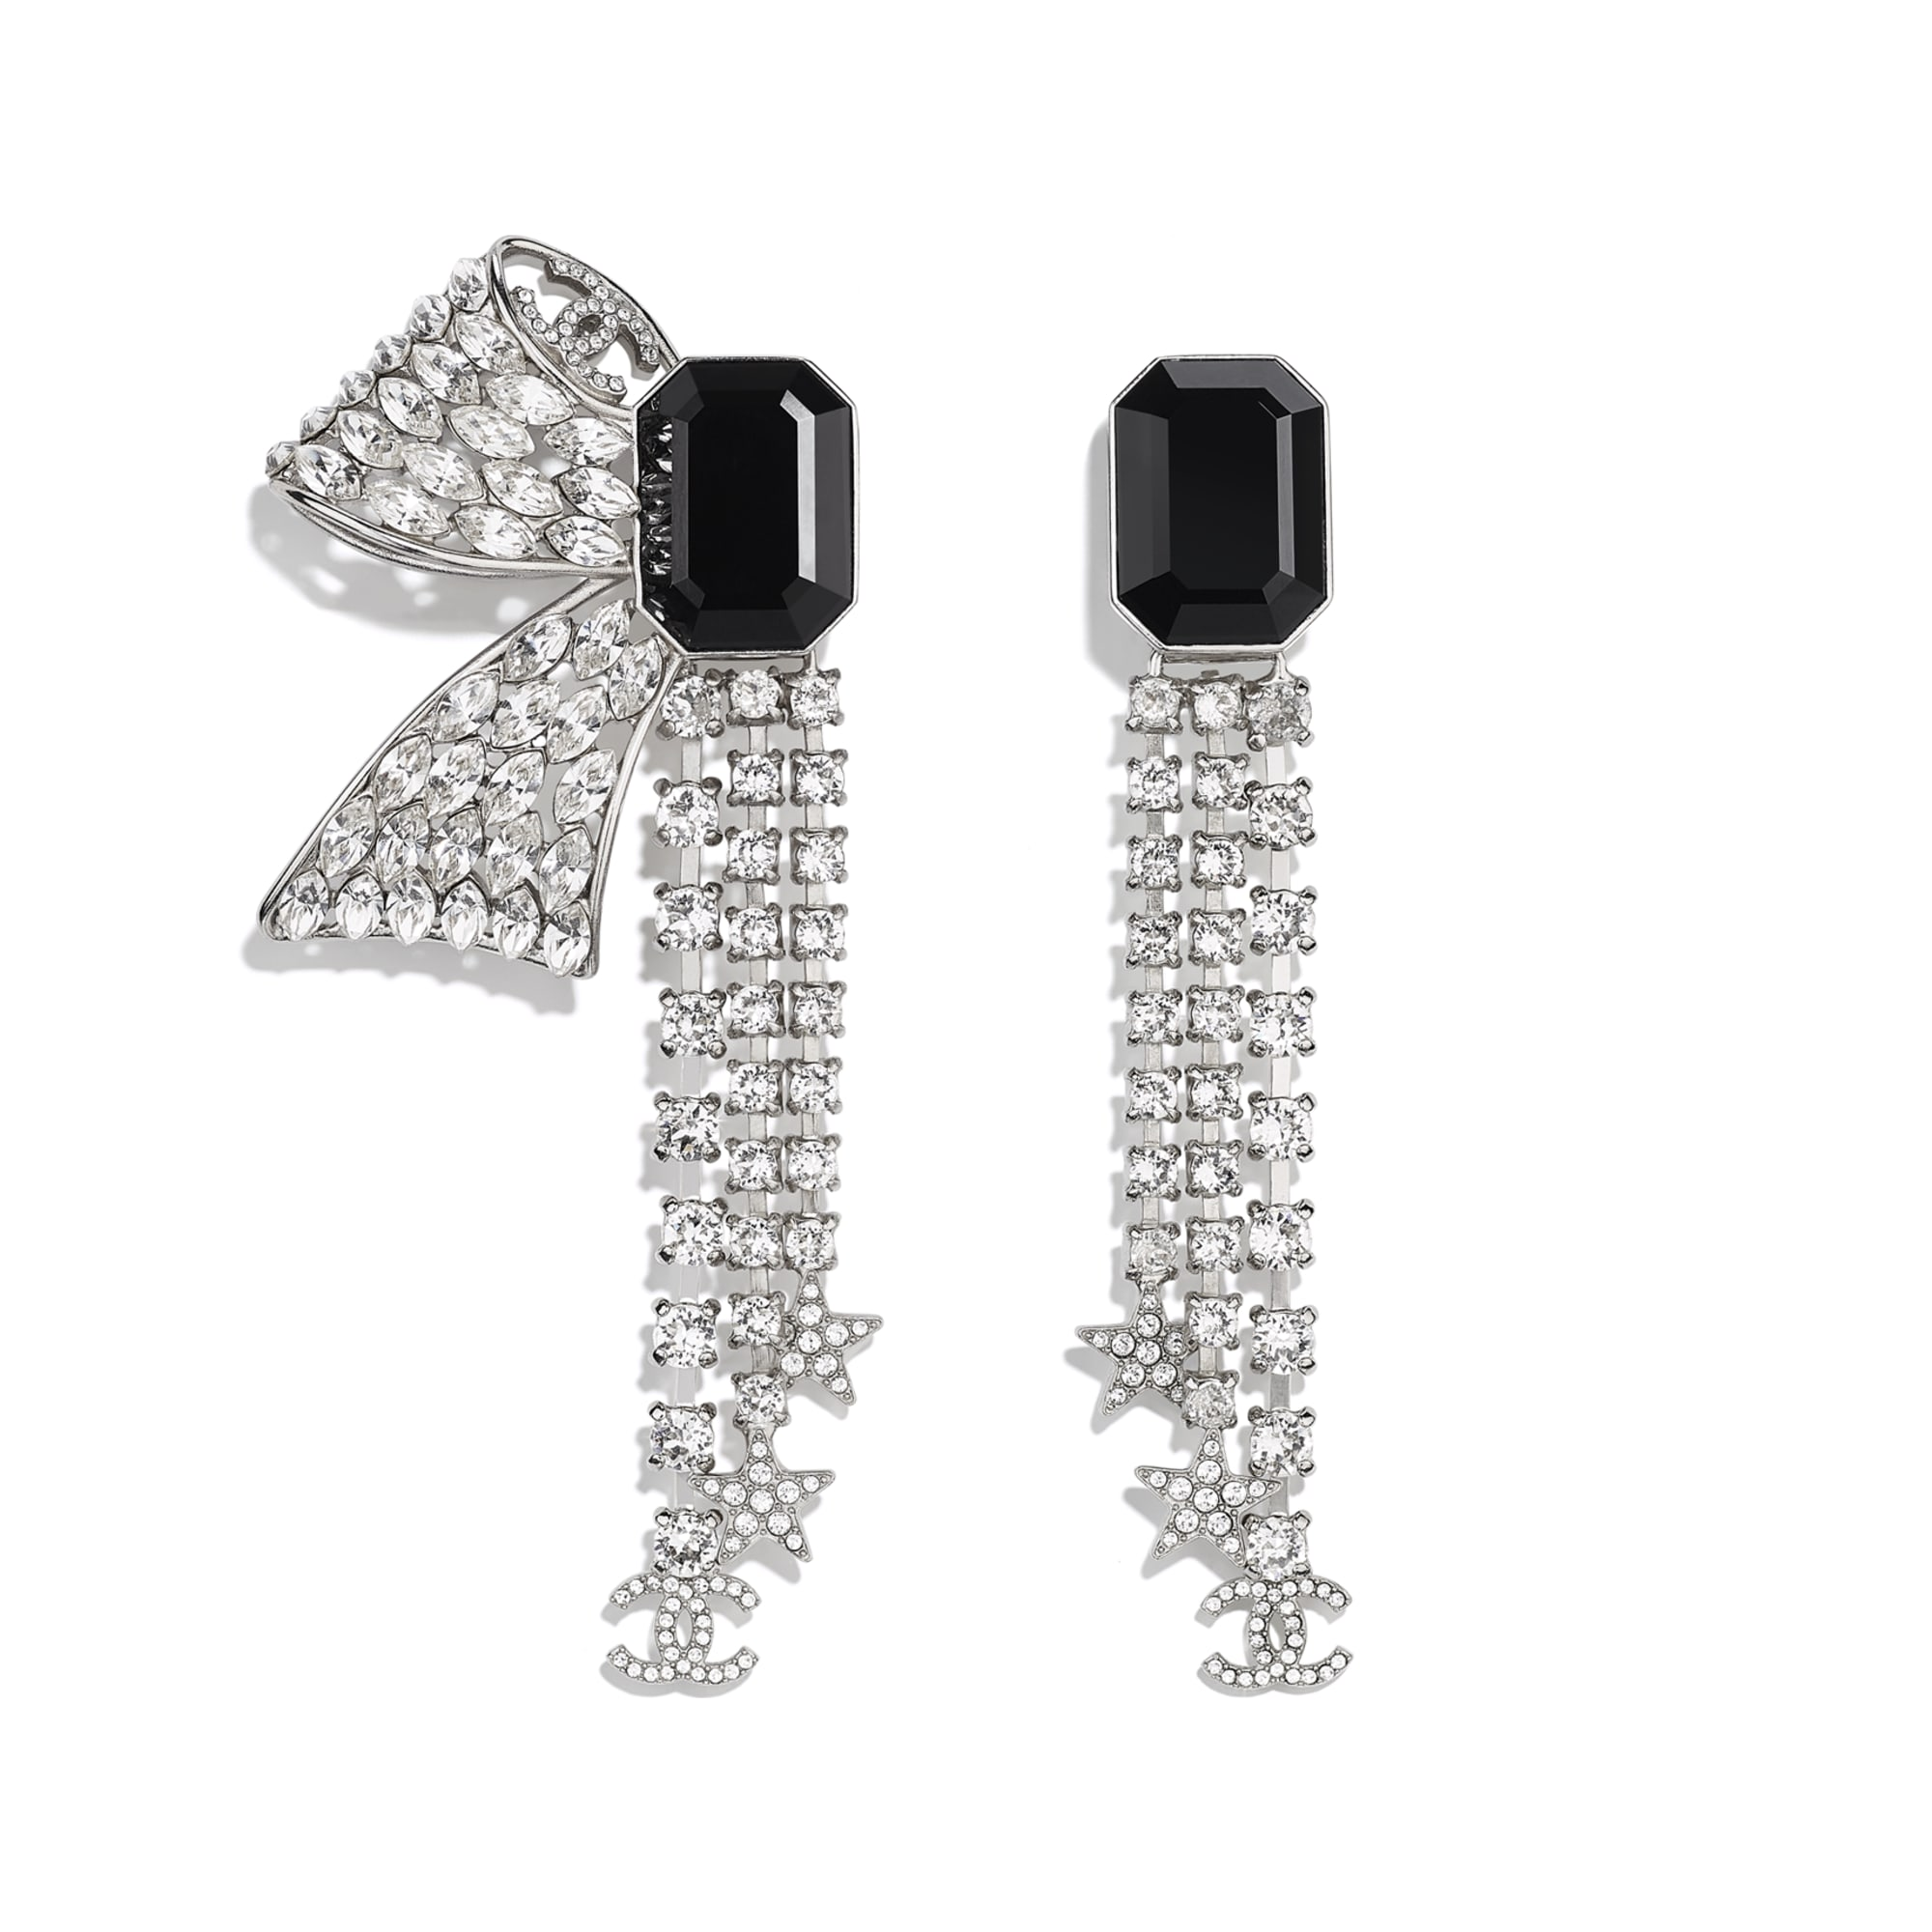 Clip-on Earrings - Silver, Crystal & Black - Metal & Strass - CHANEL - Default view - see standard sized version